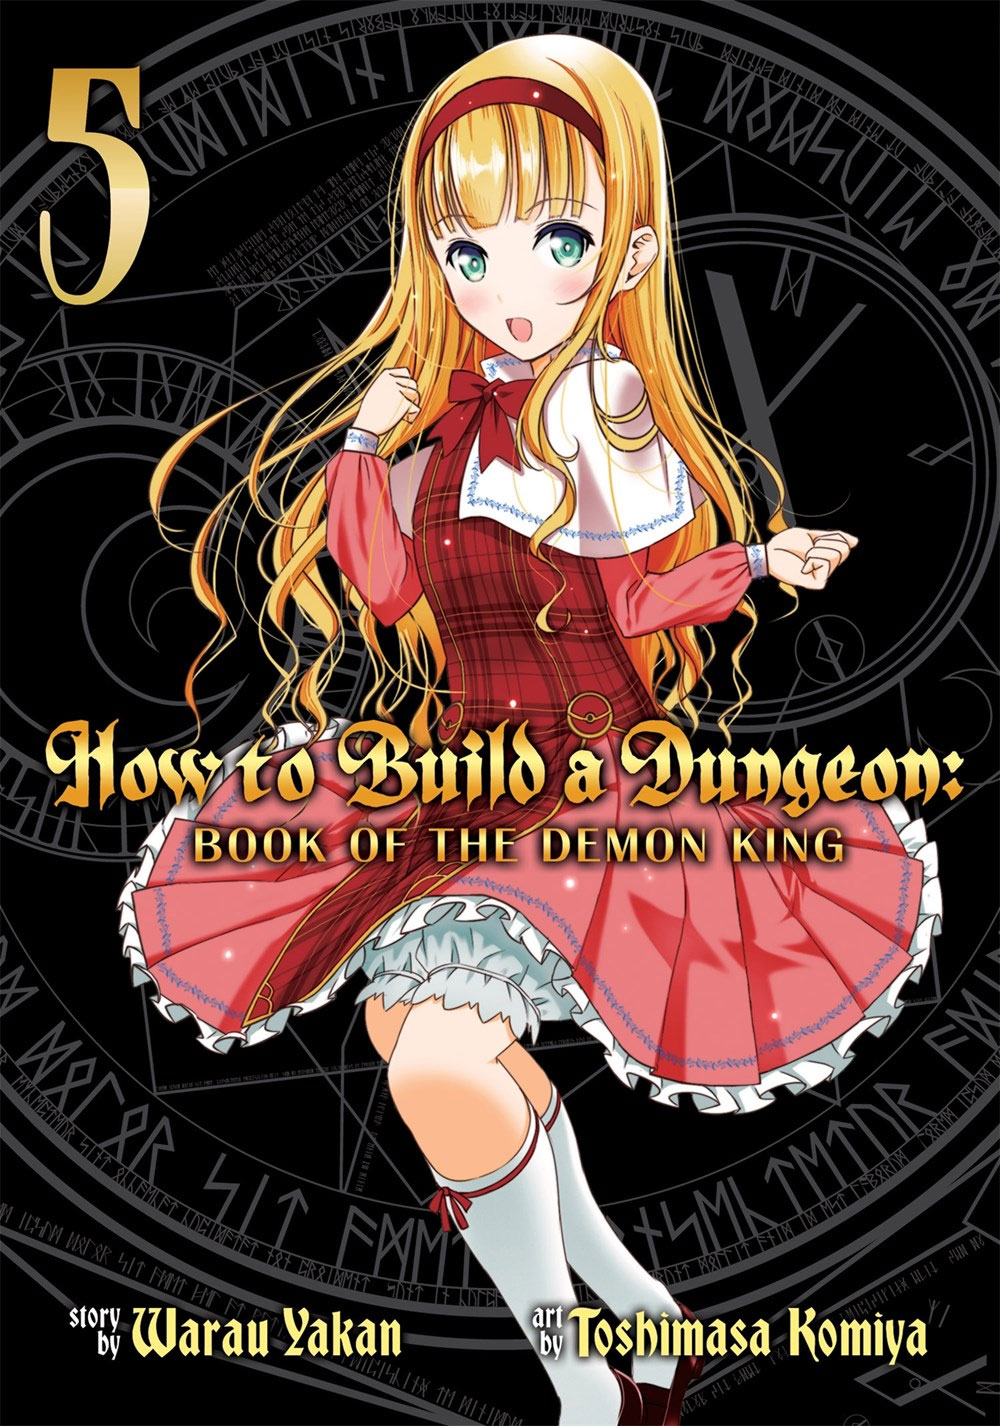 Koop TPB-Manga - How to Build a Dungeon Book of the Demon